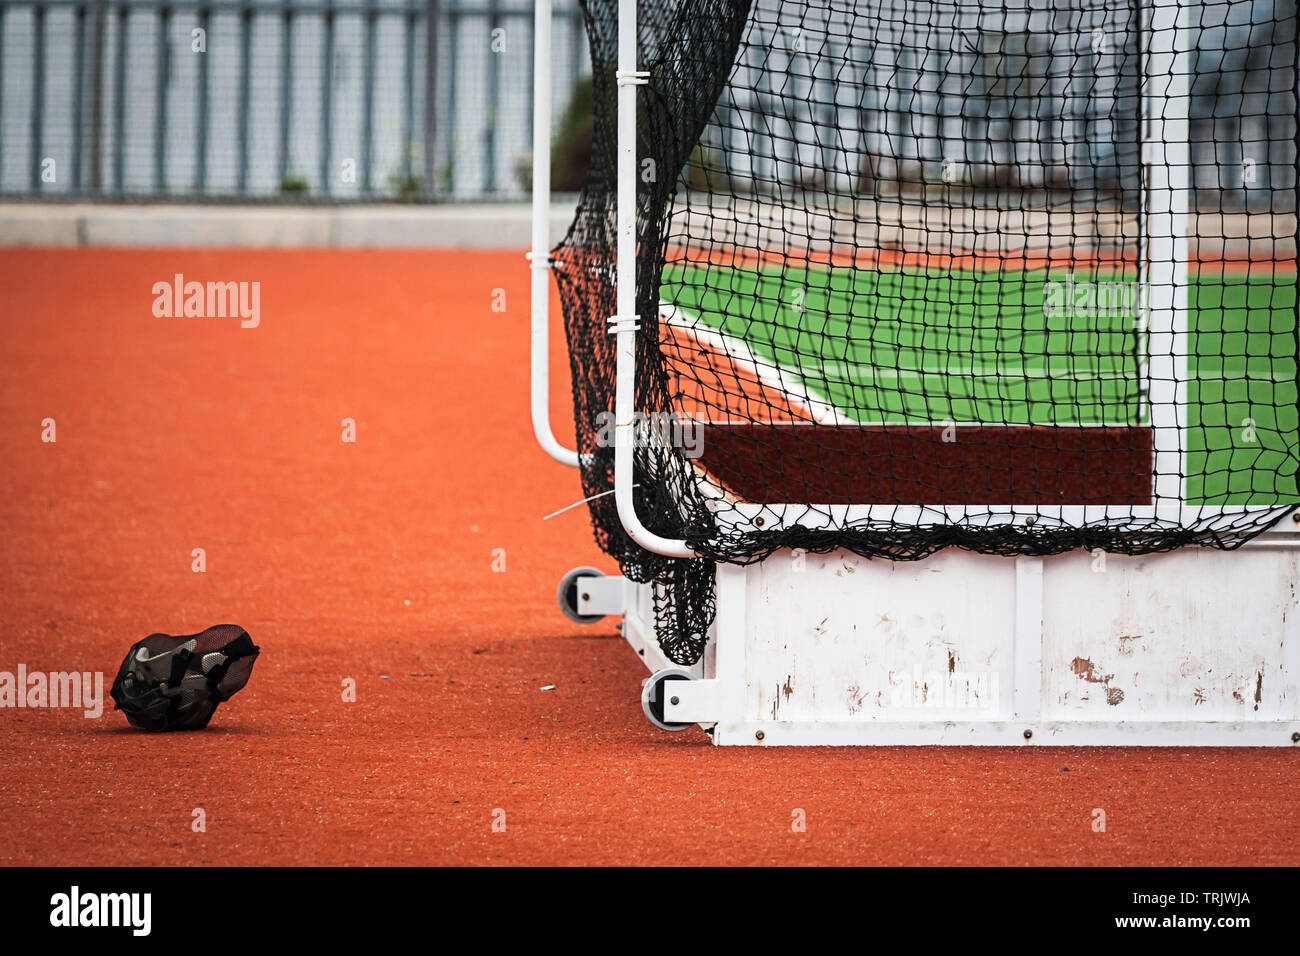 Goal box on astro hockey field with helmet in view. Stock Photo